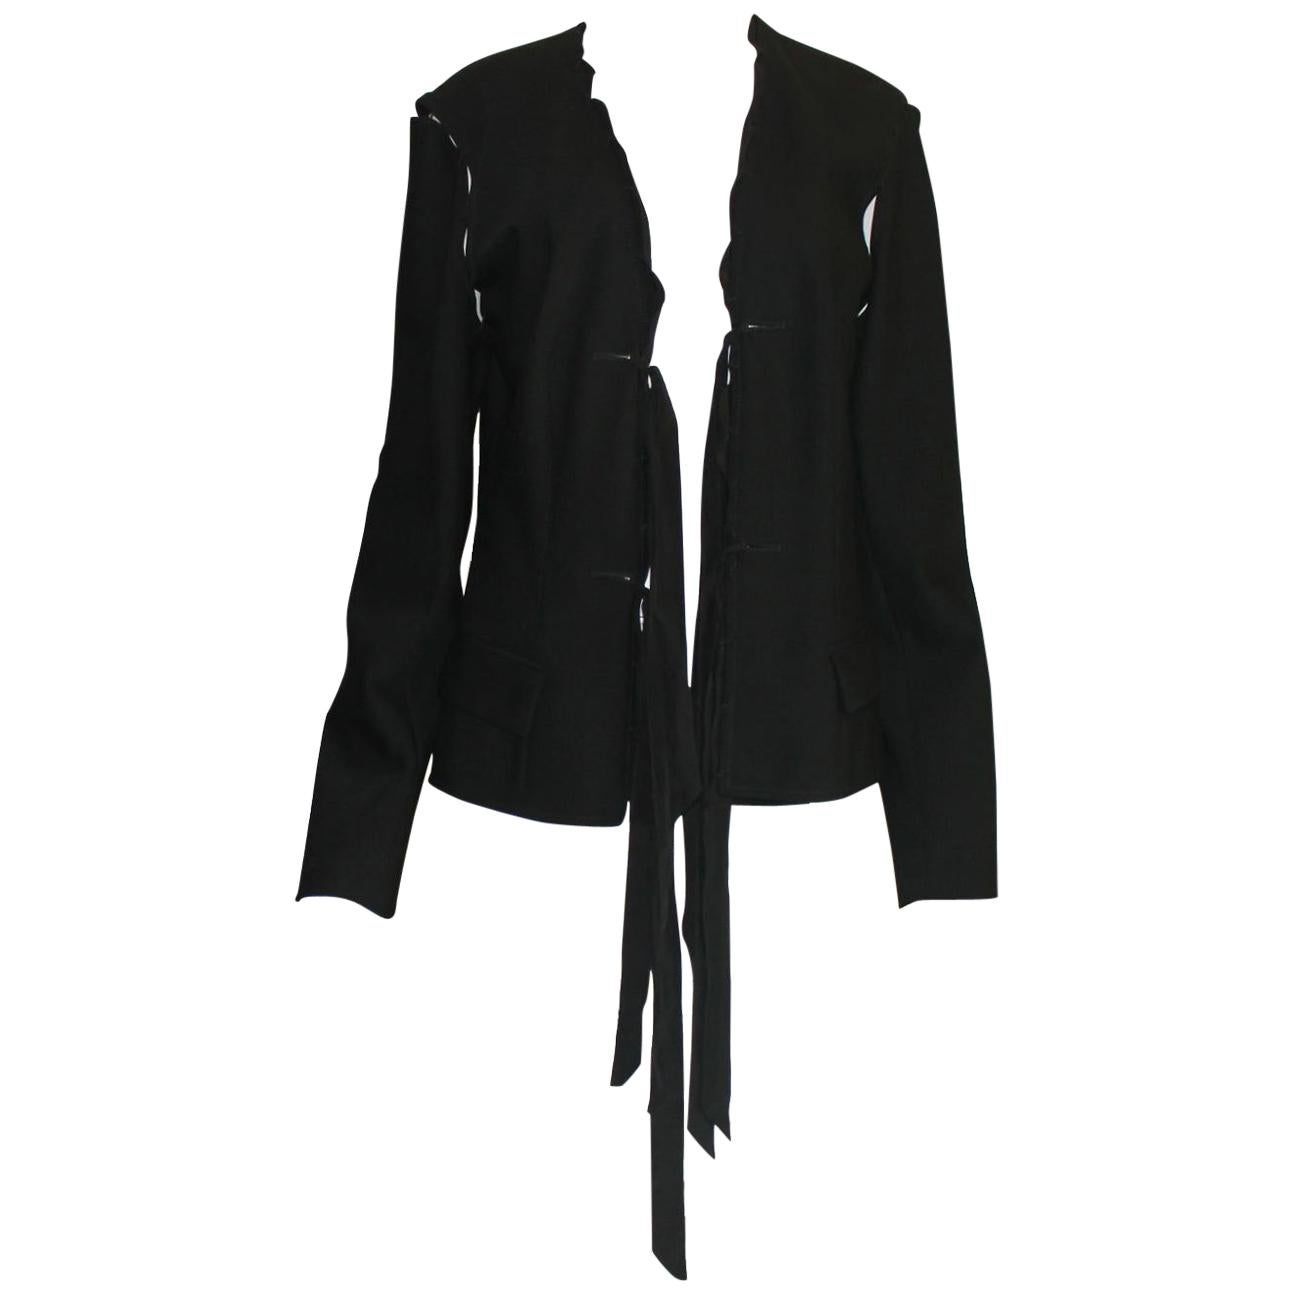 573aa064f12 Vintage Yves Saint Laurent Clothing - 1,558 For Sale at 1stdibs